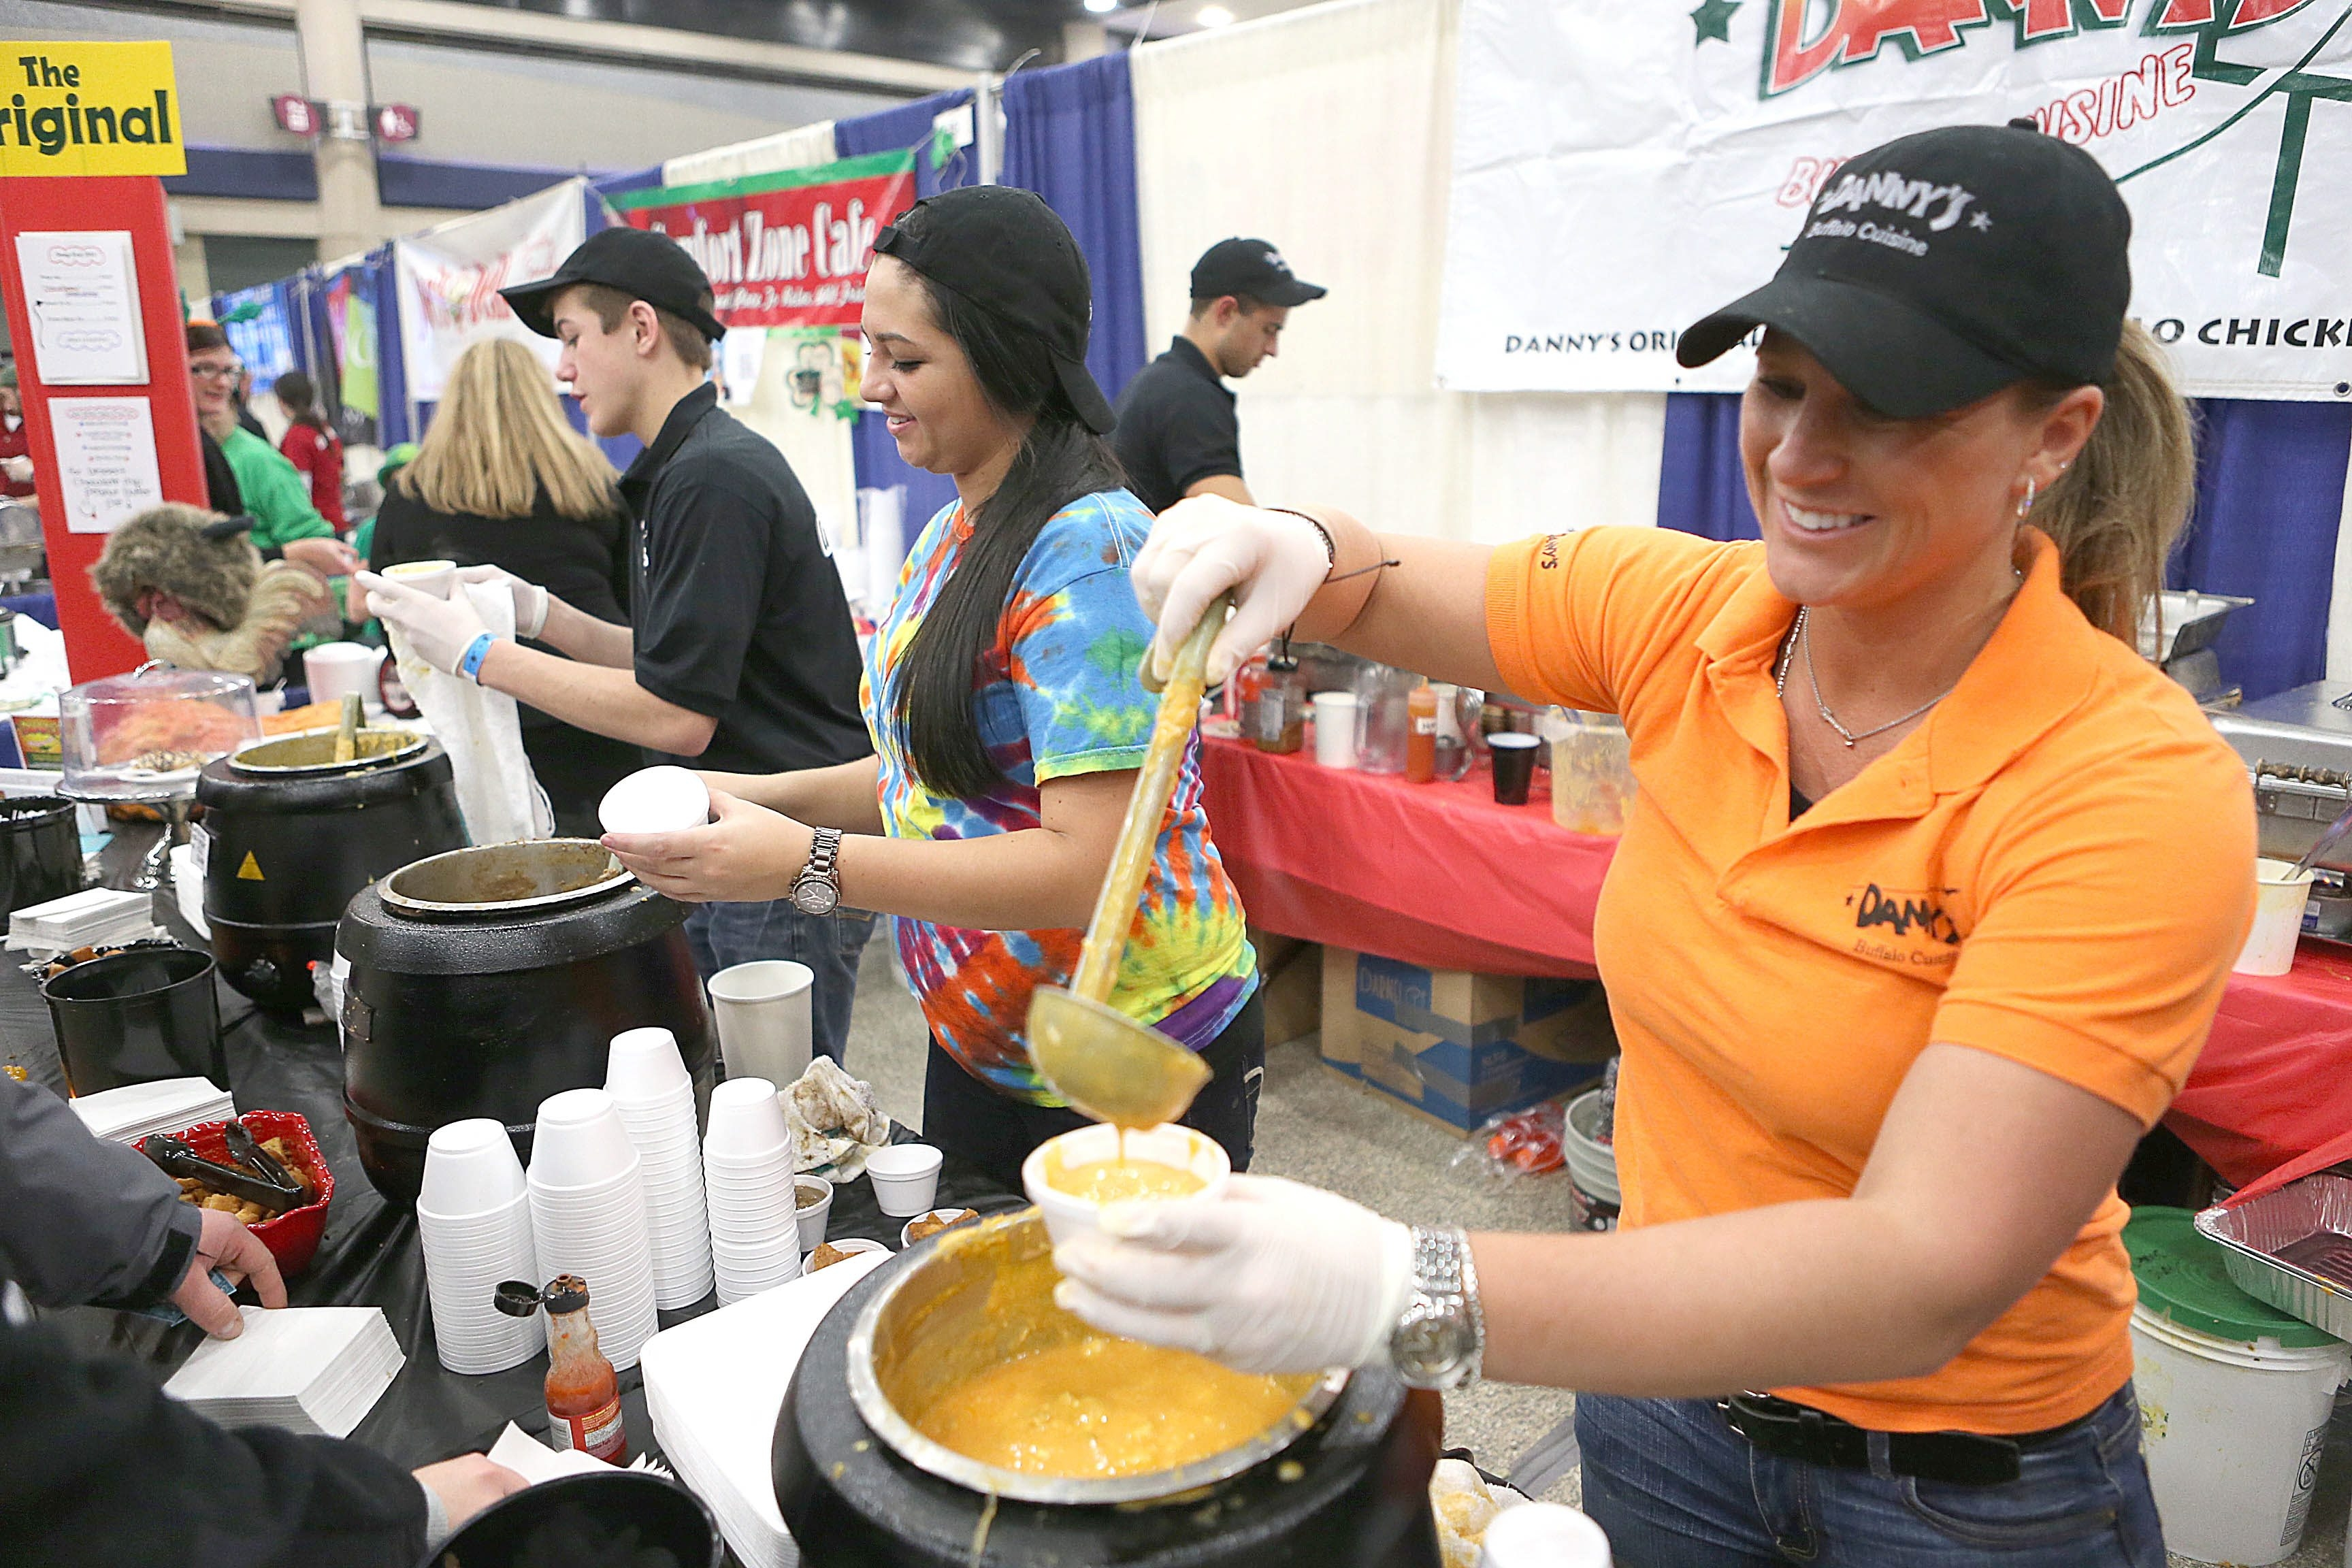 Melinda Ebeling, right, and Melissa Schaumloeffel of Danny's dish out chicken wing and beef on weck soups at the 4th annual Buffalo Soup-Fest at the Buffalo Niagara Convention Center on Sunday.